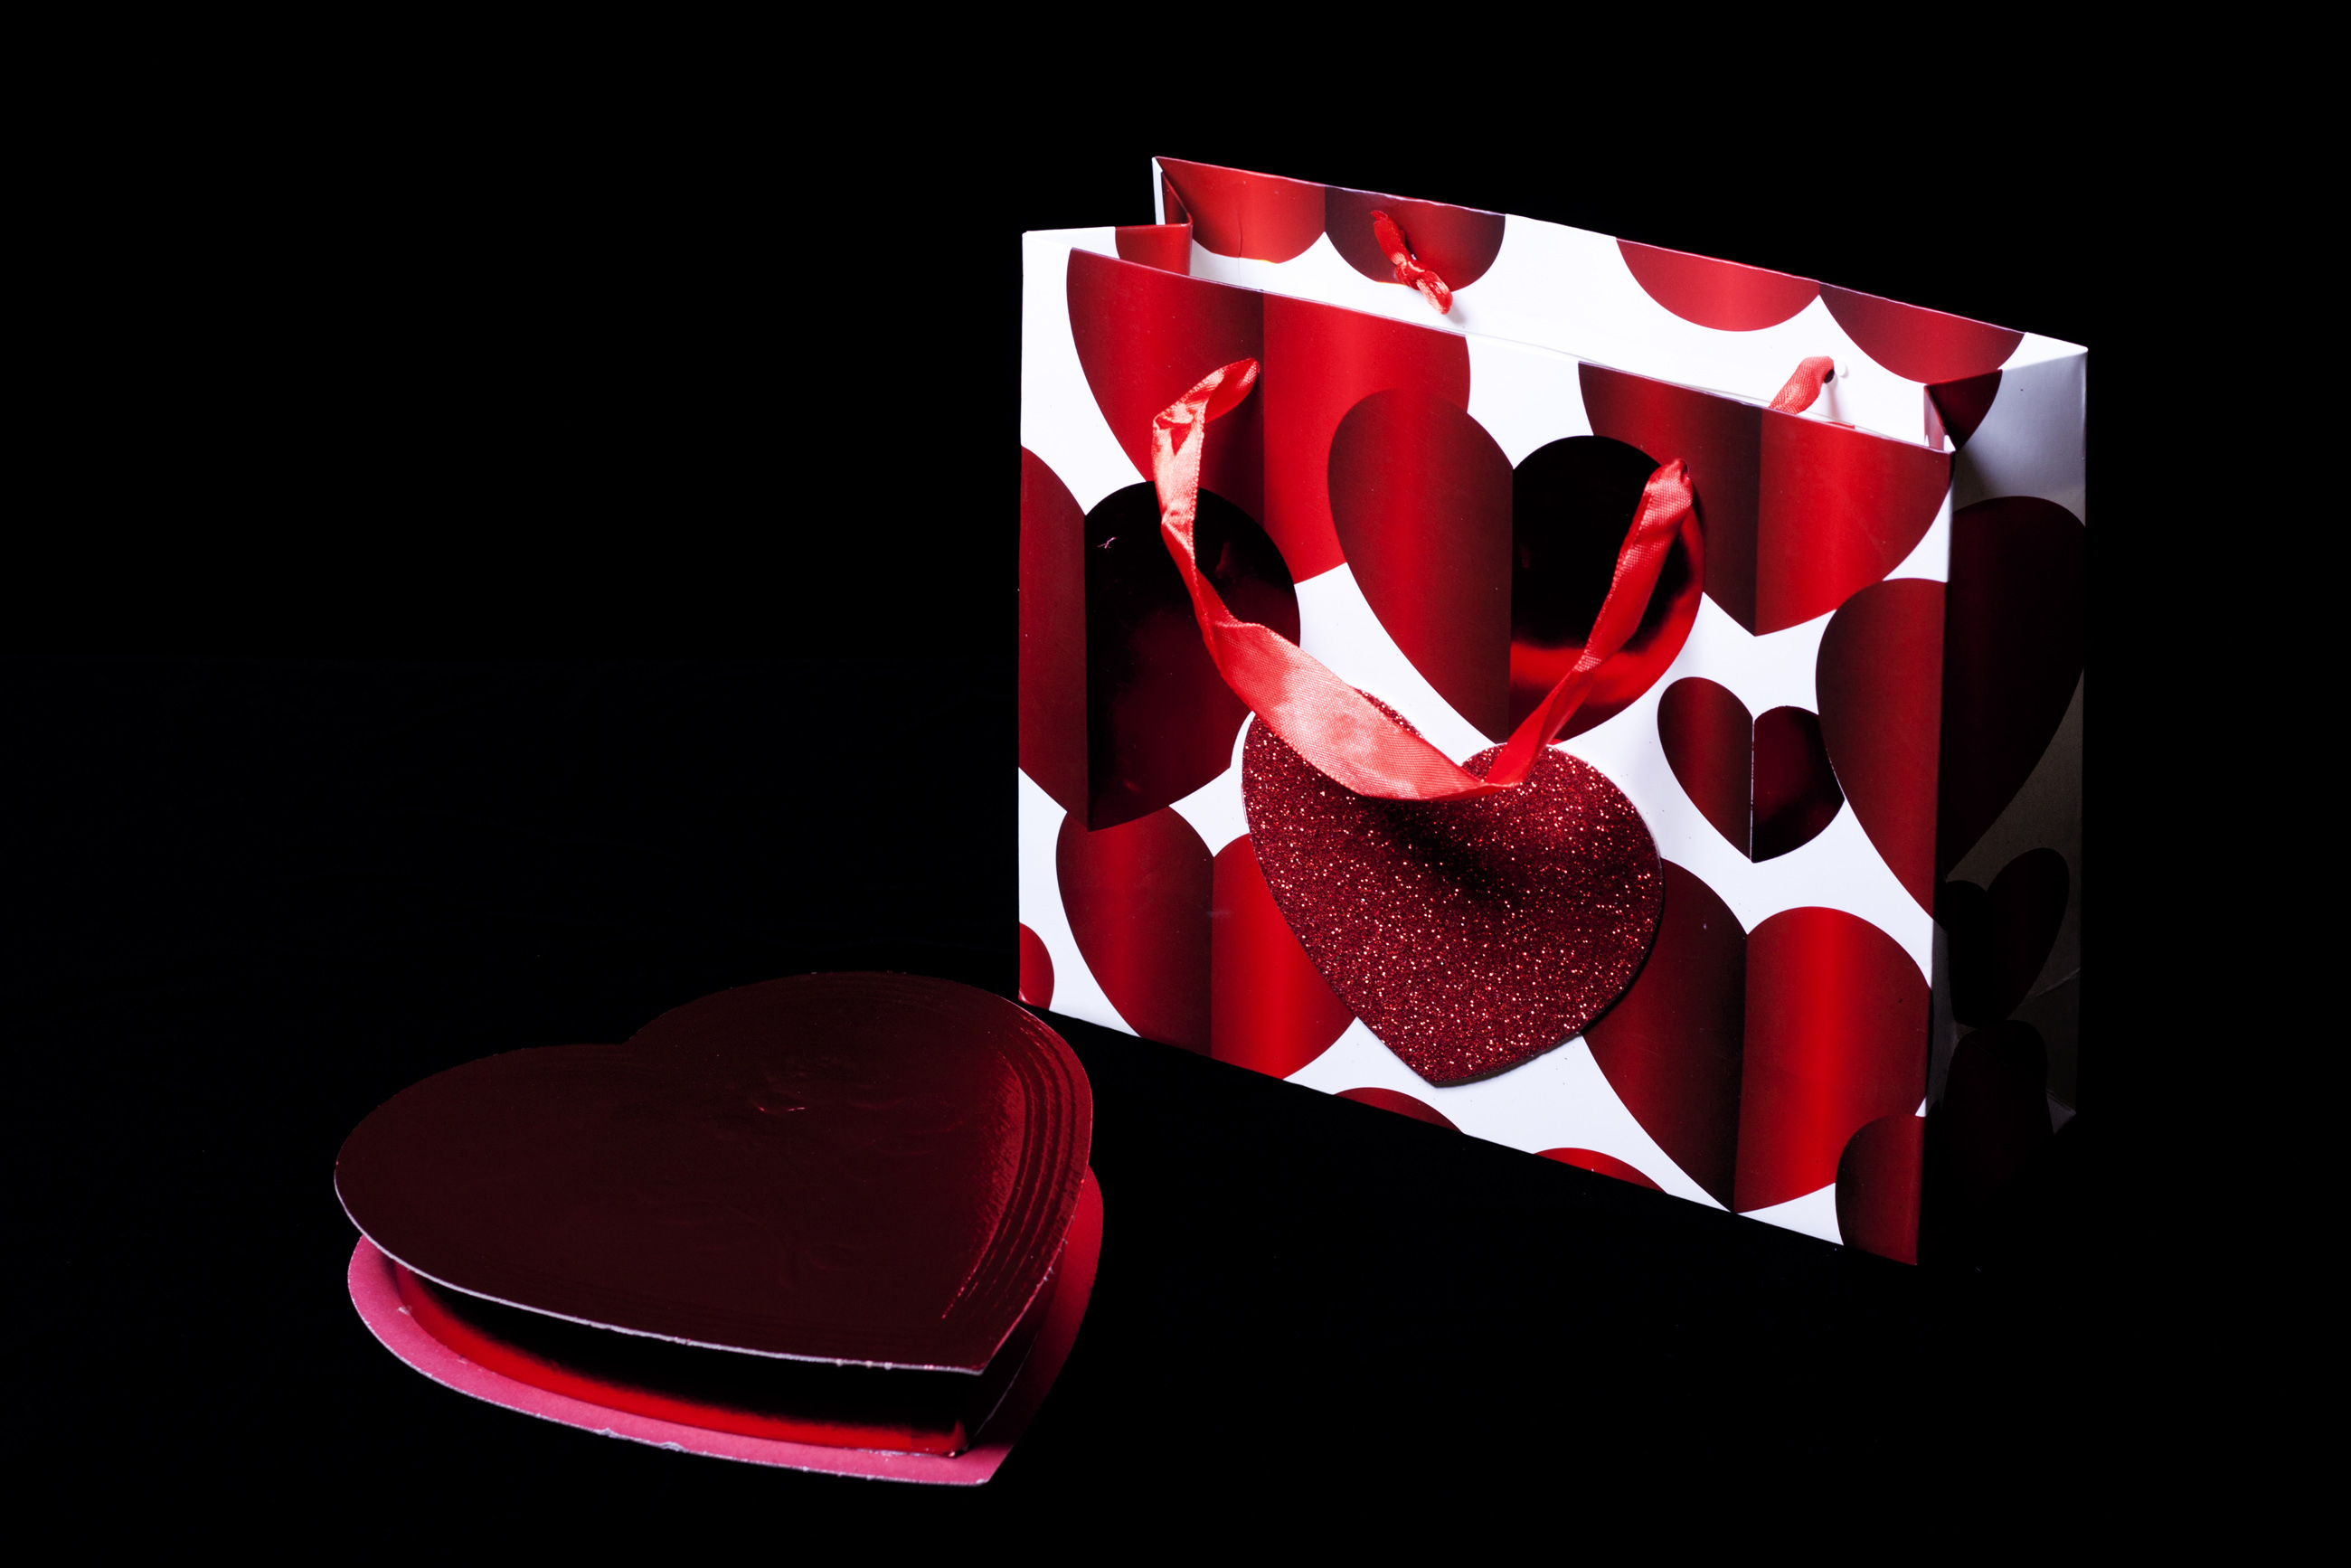 Bag and box of chocolates, Affection, Ribbon, Objects, Package, HQ Photo